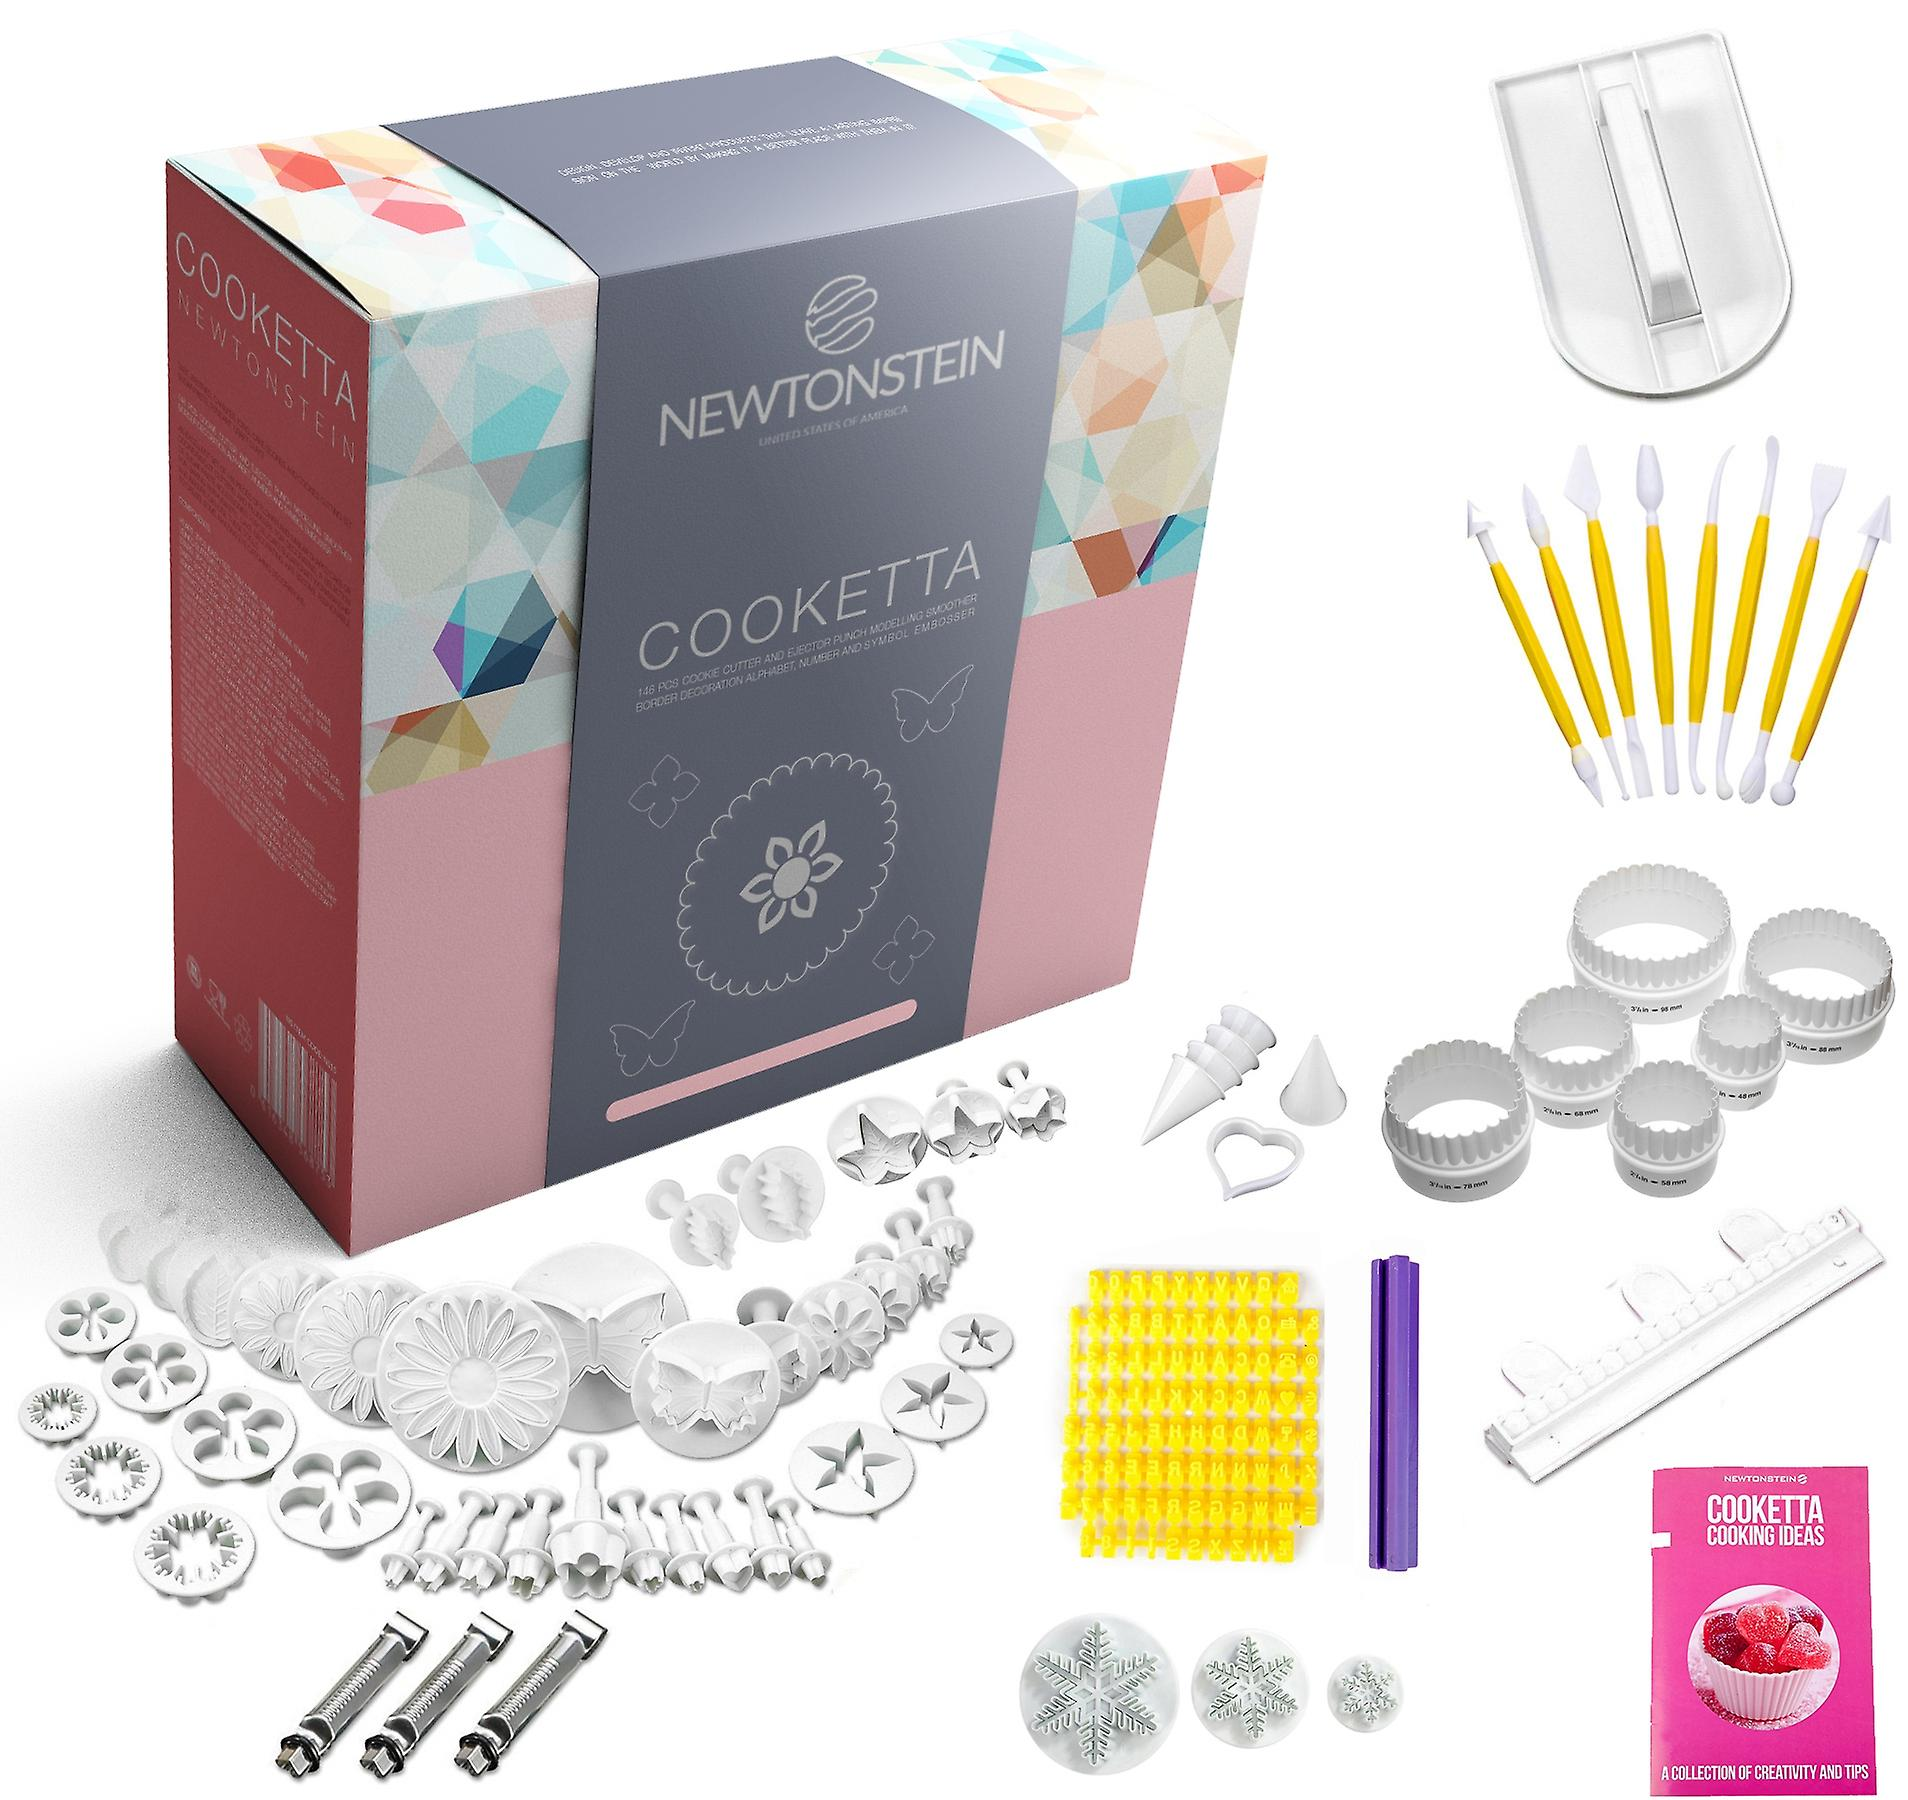 Cooketta - 157 Pcs Tart Pastries Canaps Icing Cake Clay Fondant Sugarpaste Scones and Cookies Cutter and Embosser Design Set with Ideas Booklet